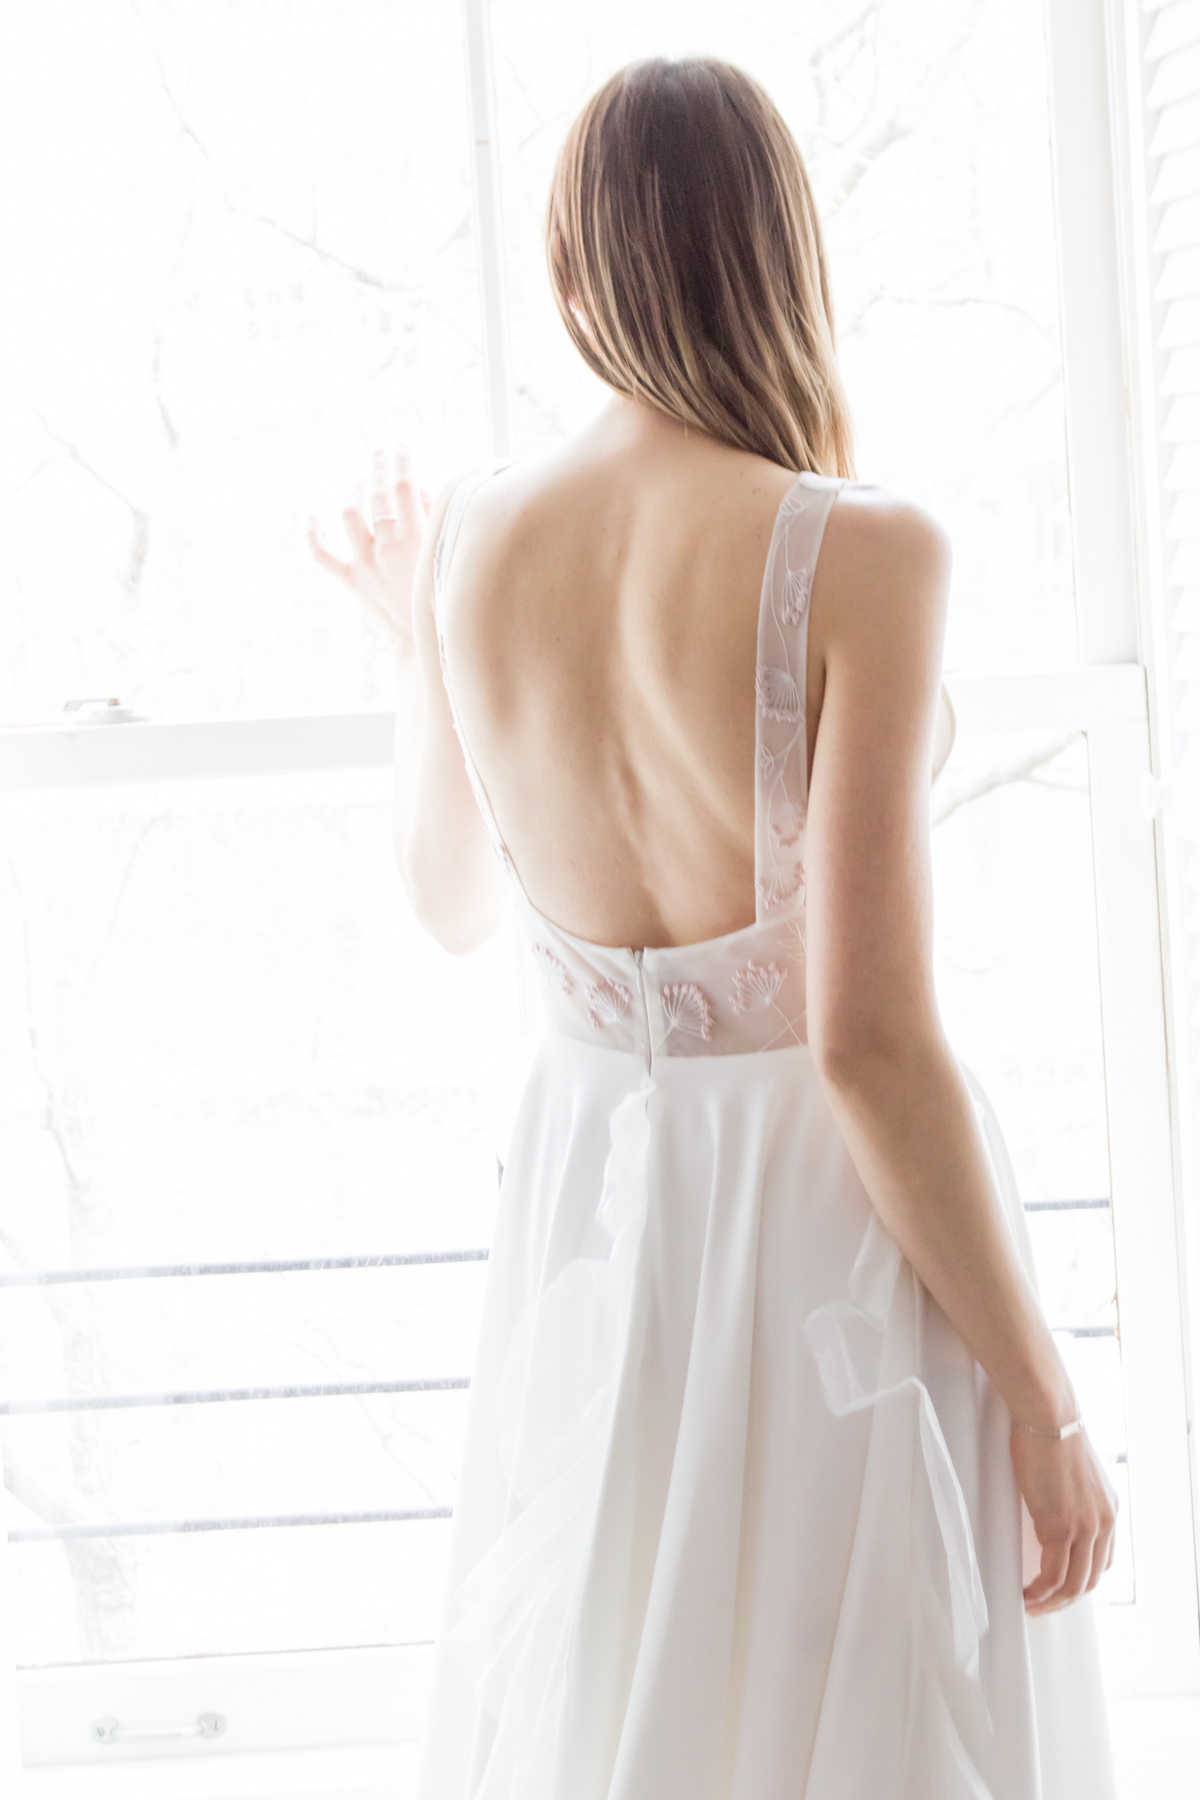 Halfpenny London in New York City   Wedding dresses and bridal separates